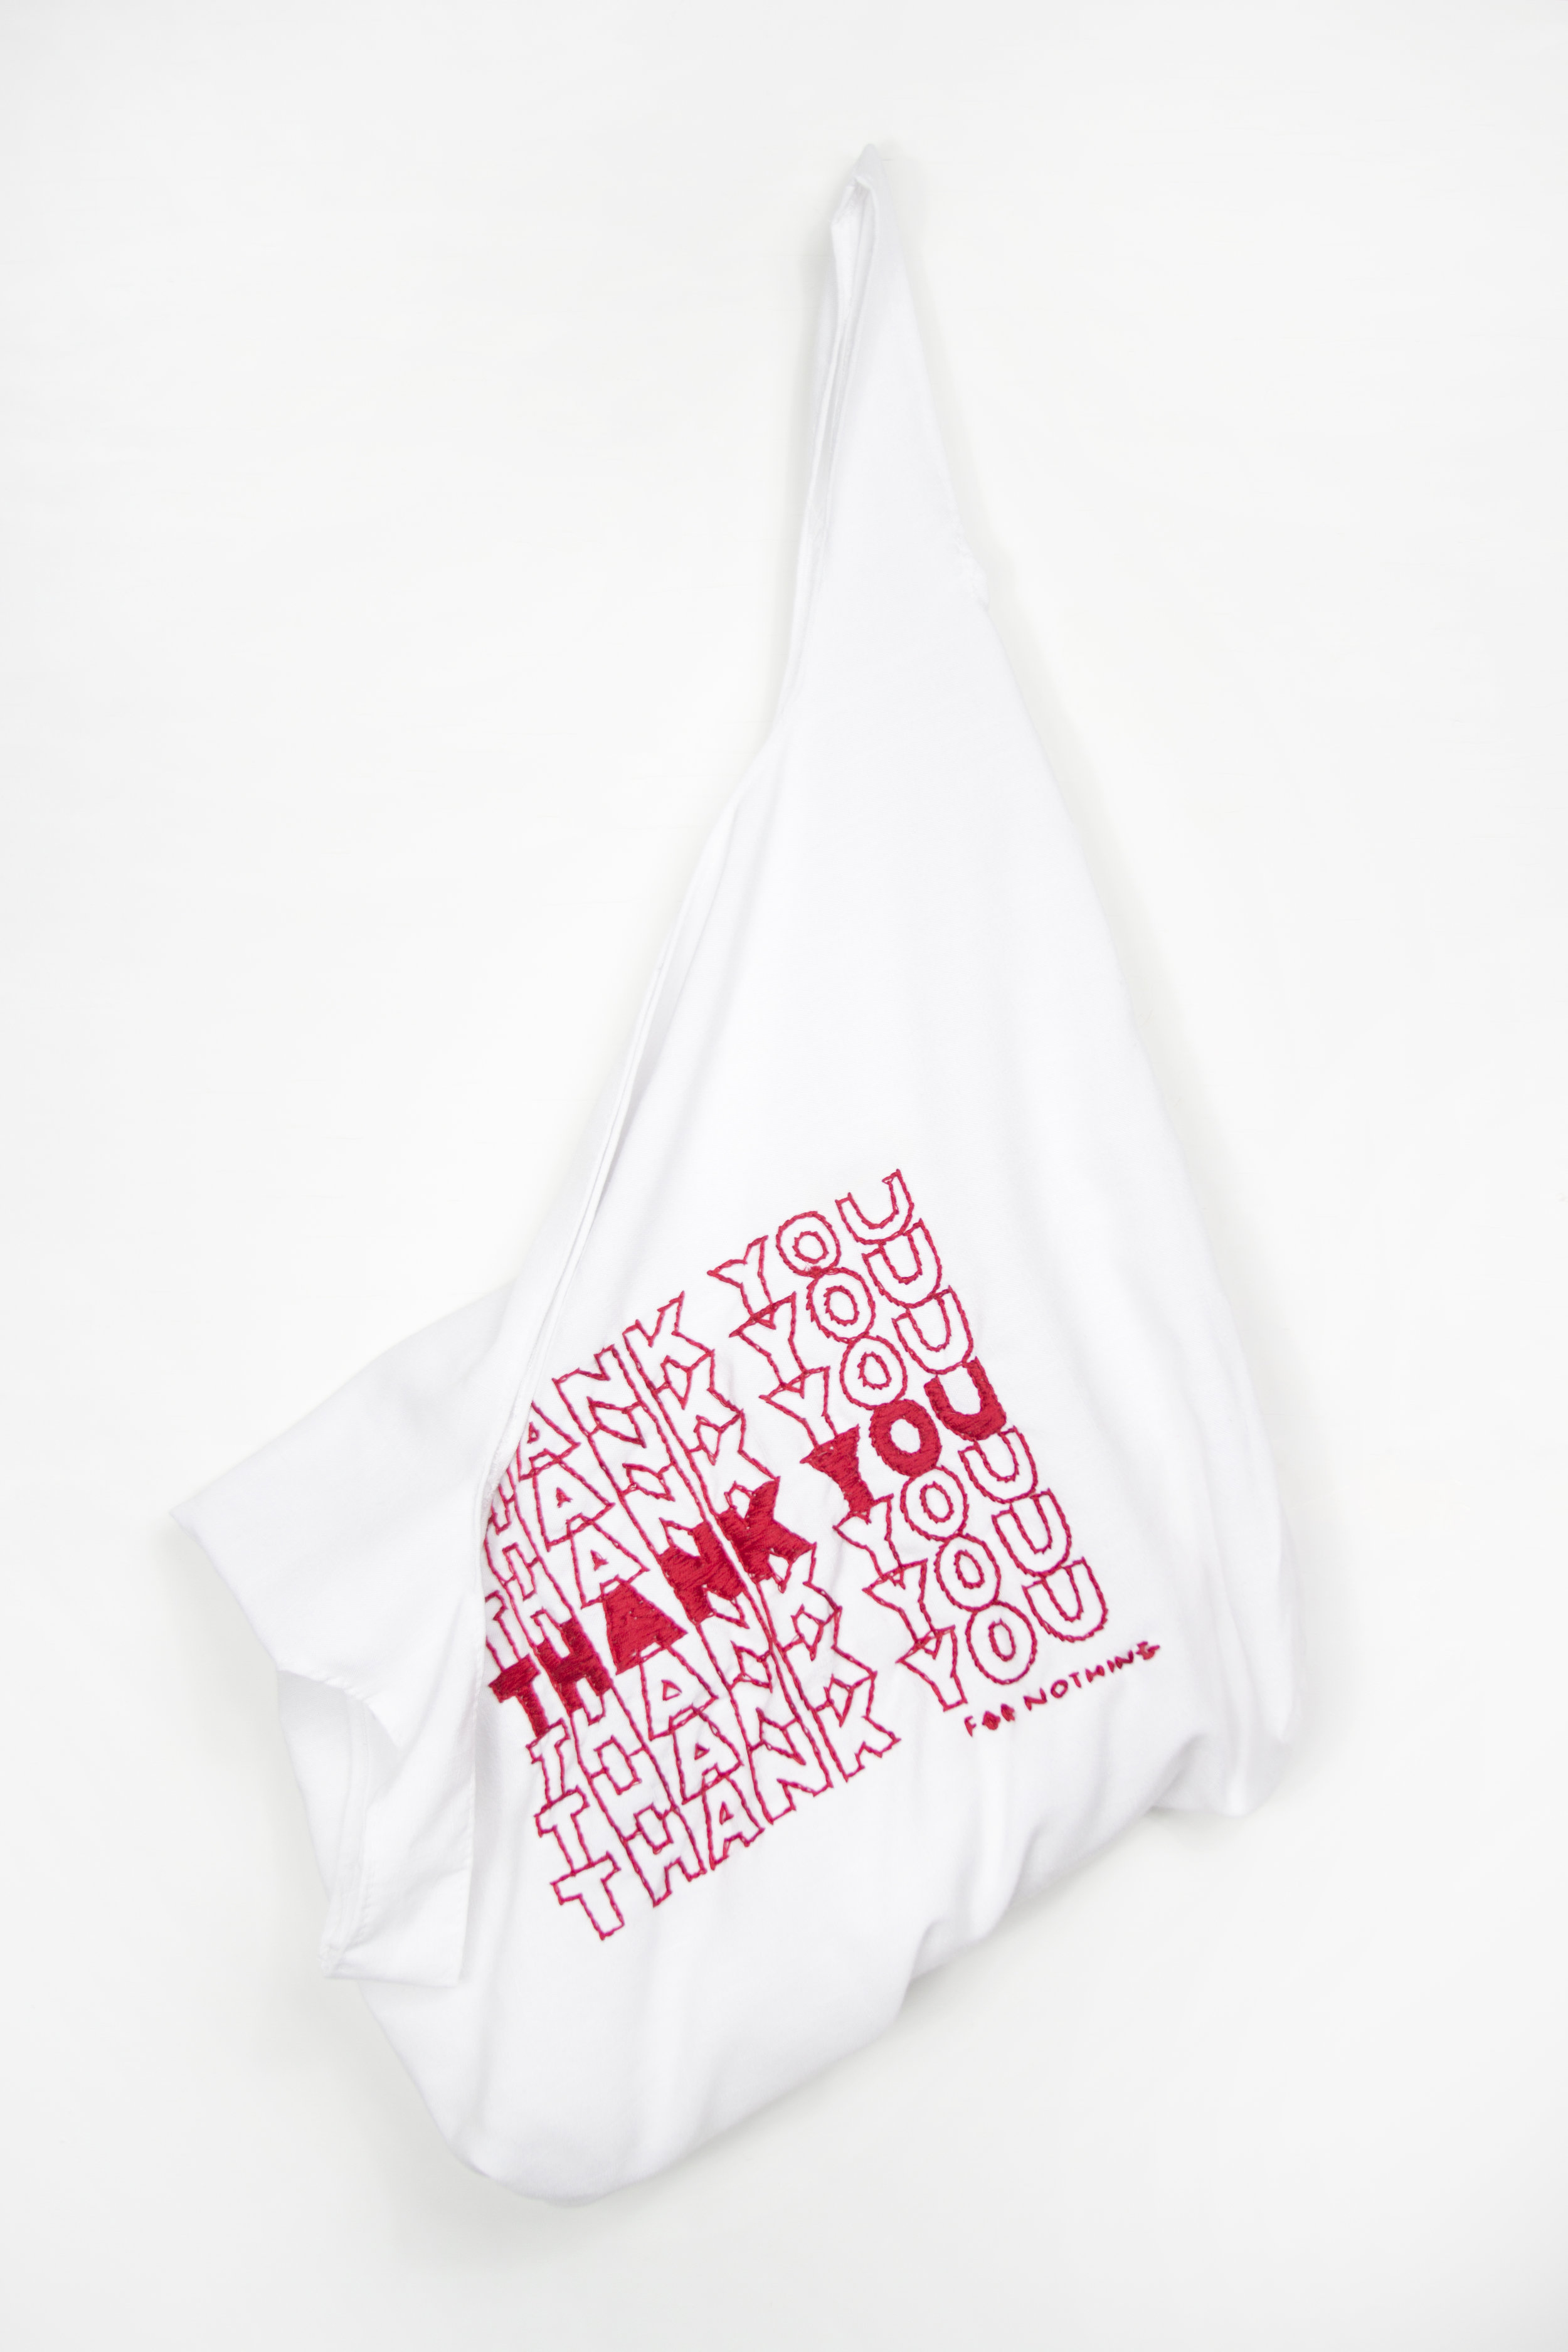 """Thanks for Nothing Erica Mendoza 2016 hand-embroidered linen H 20"""" x W 14"""" x D 6"""""""